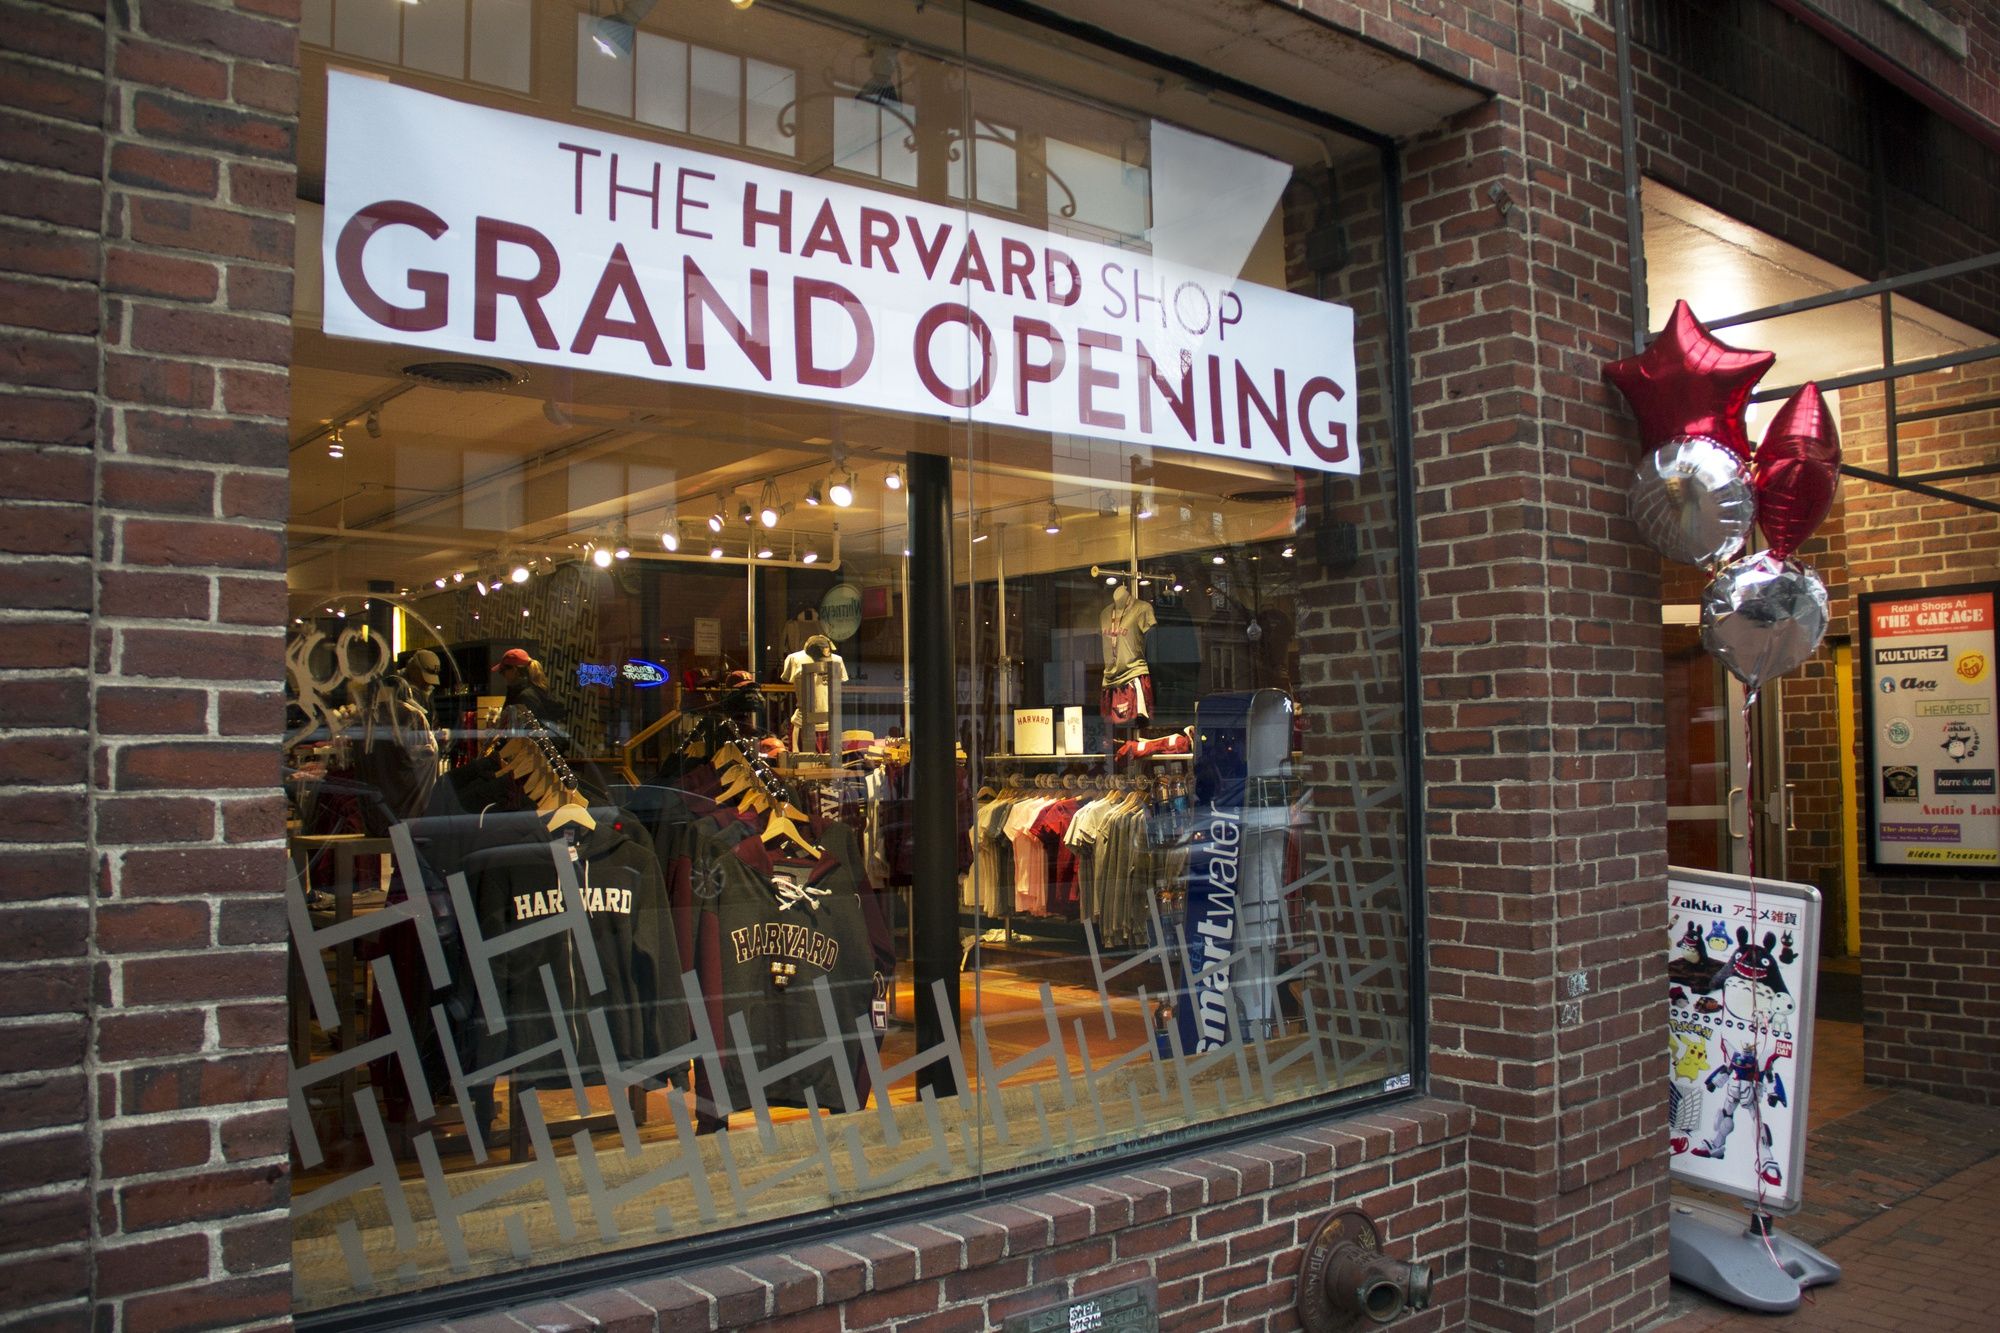 The Harvard Shop celebrated the opening of a new location in The Garage at 34 JFK Street with a store-wide sale, free food, giveaways, and student-performed music. The Harvard Shop, a student-run business, is a subsidiary of the Harvard Student Agencies.